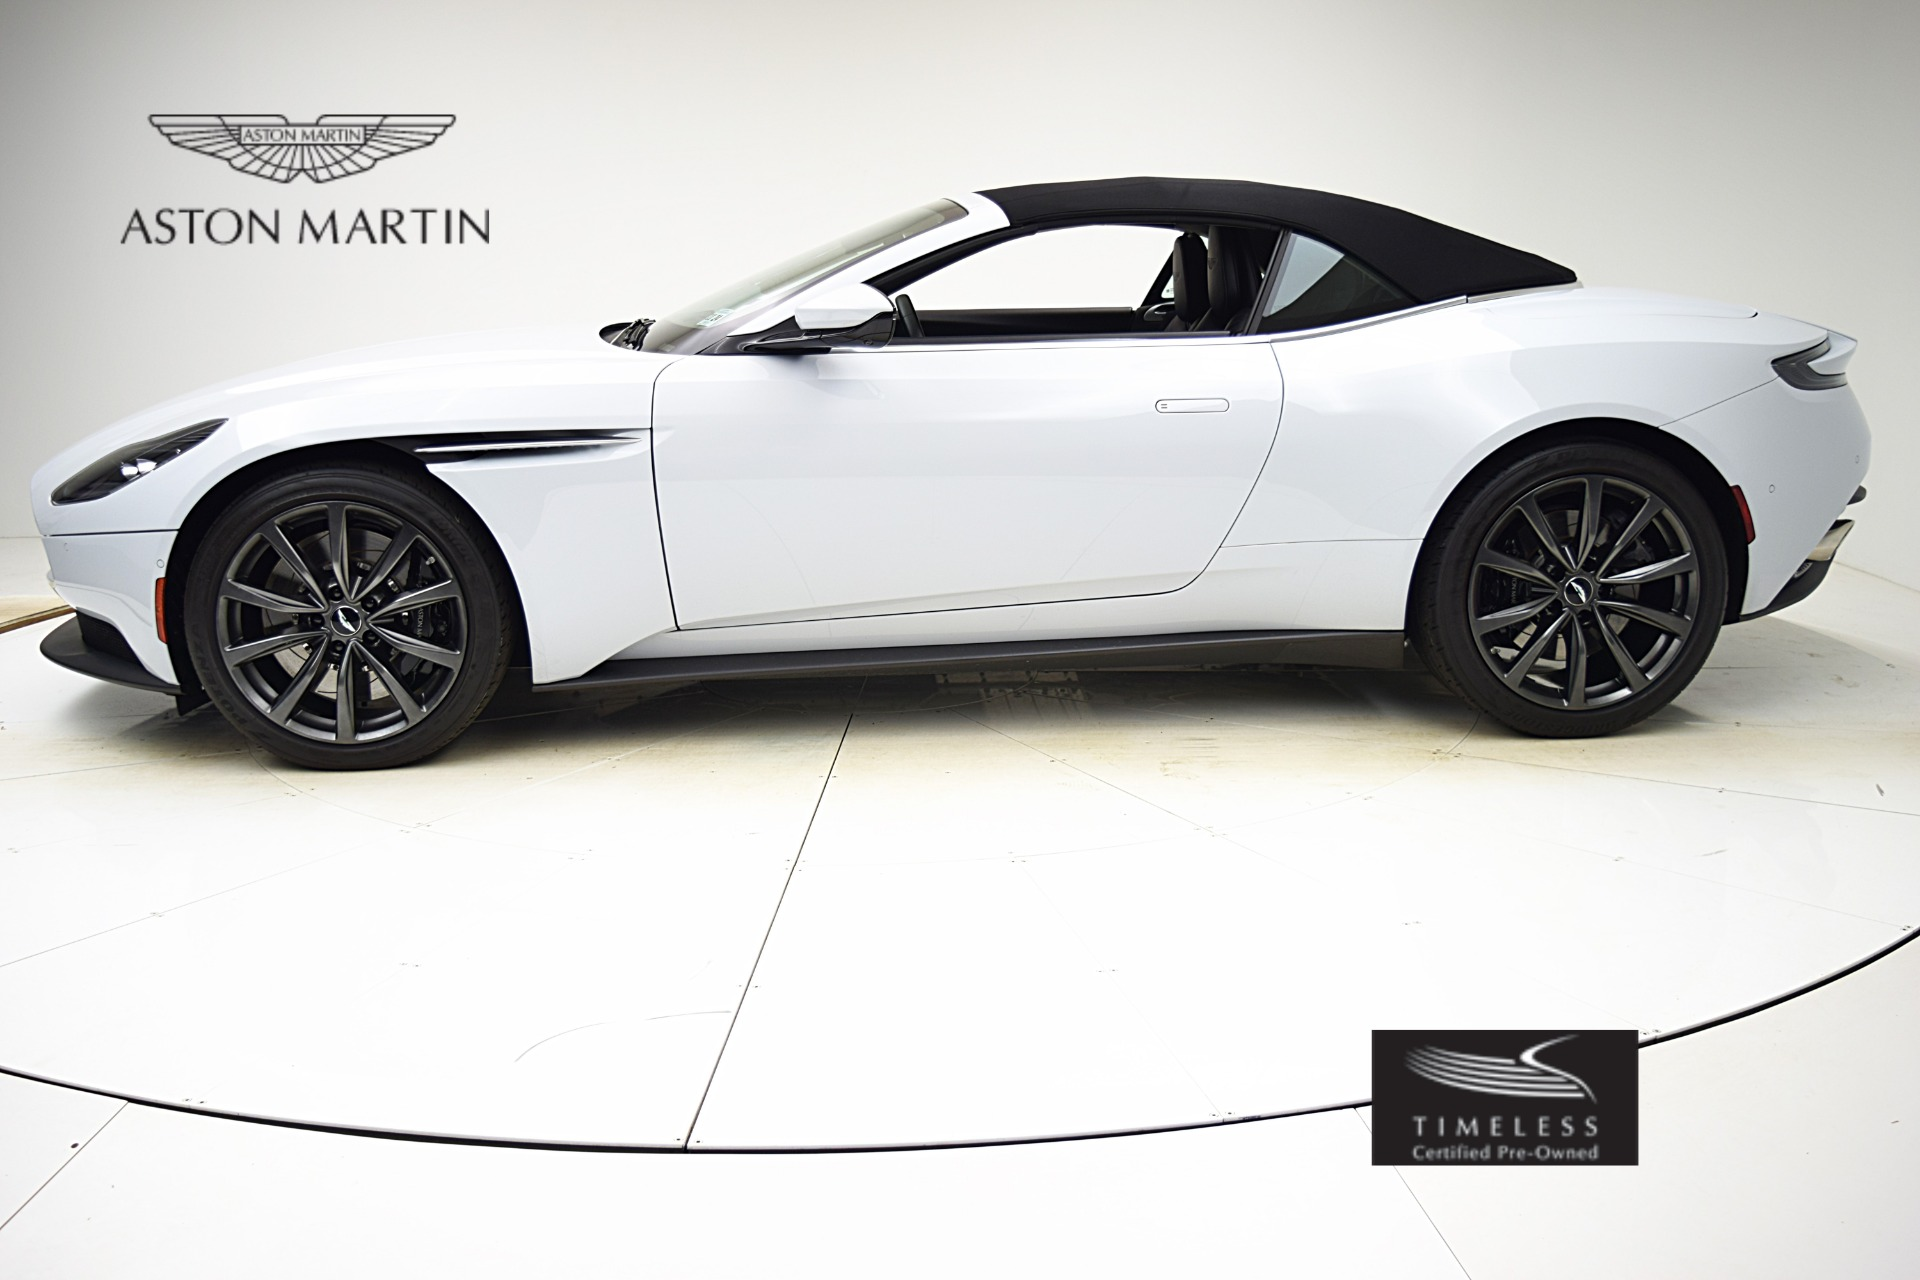 New 2019 Aston Martin Db11 Volante For Sale 244 718 F C Kerbeck Aston Martin Stock 19a115